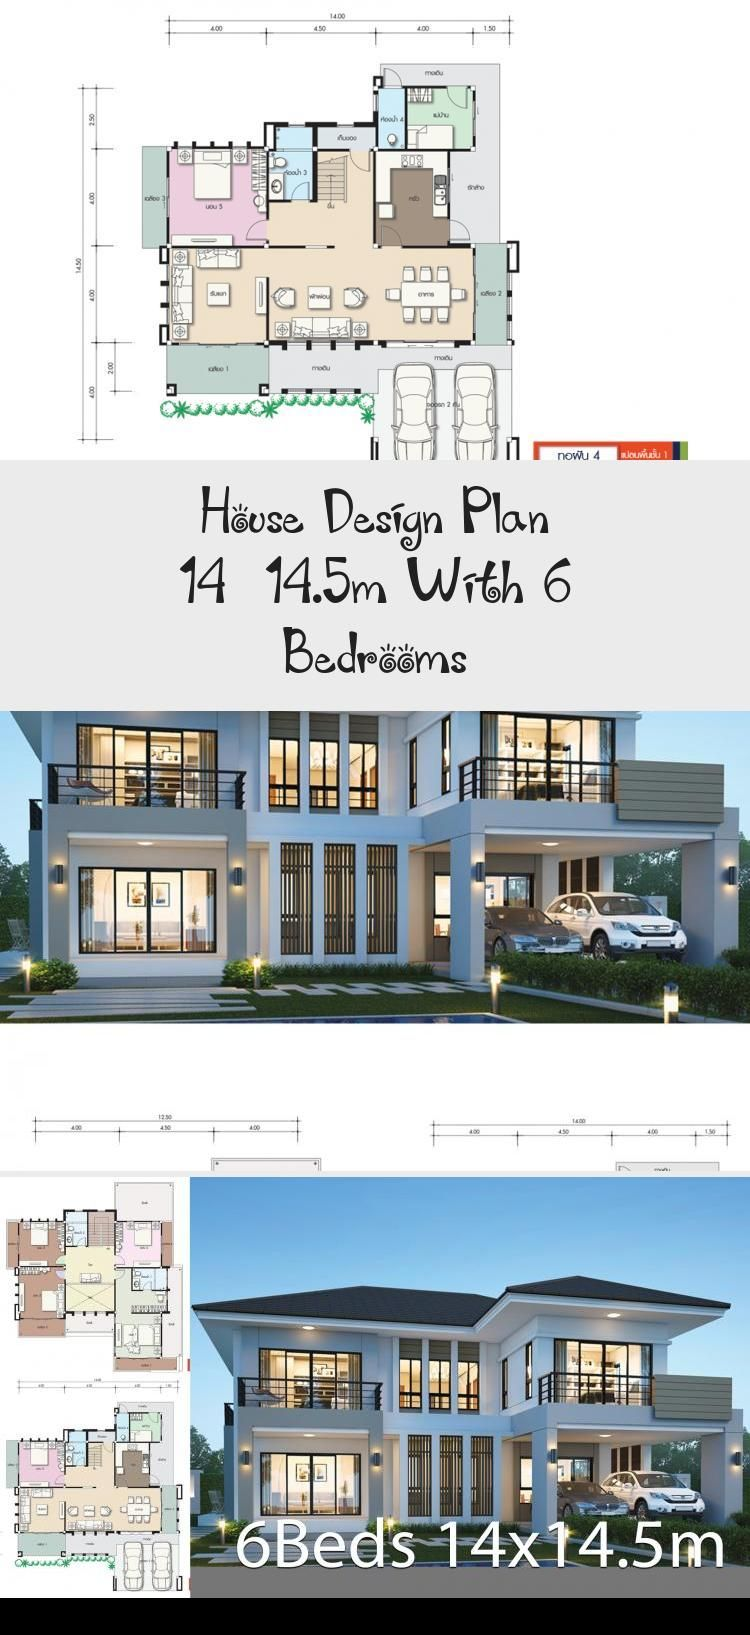 House Design Plan 14 14 5m With 6 Bedrooms House In 2020 Home Design Plans House Design Contemporary House Plans